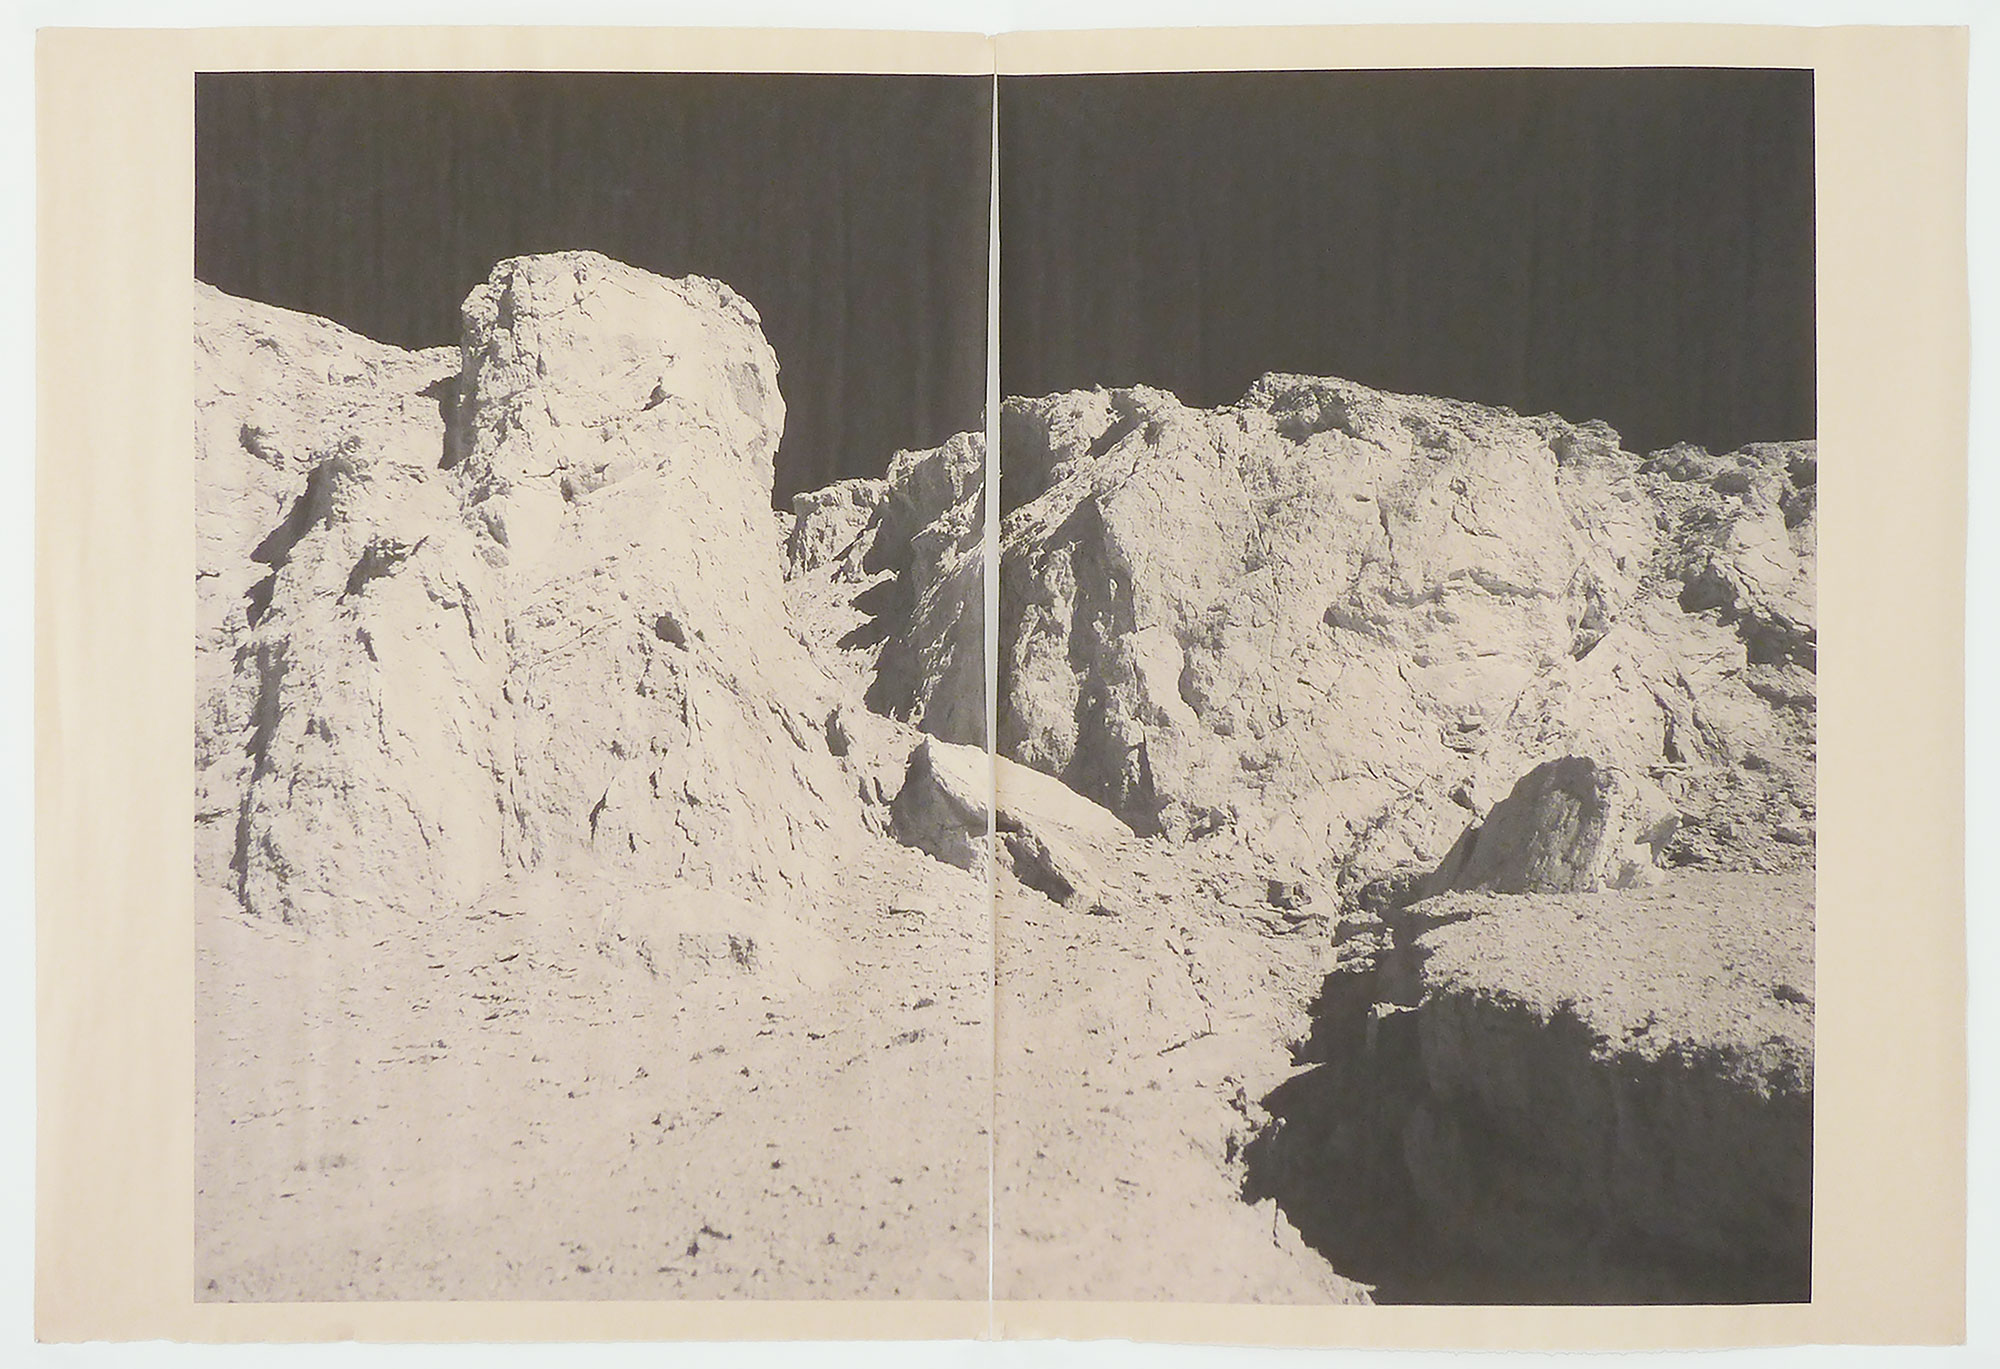 DV_7276,  unique diptych print on newsprint, 36 x 24 inches, 2014